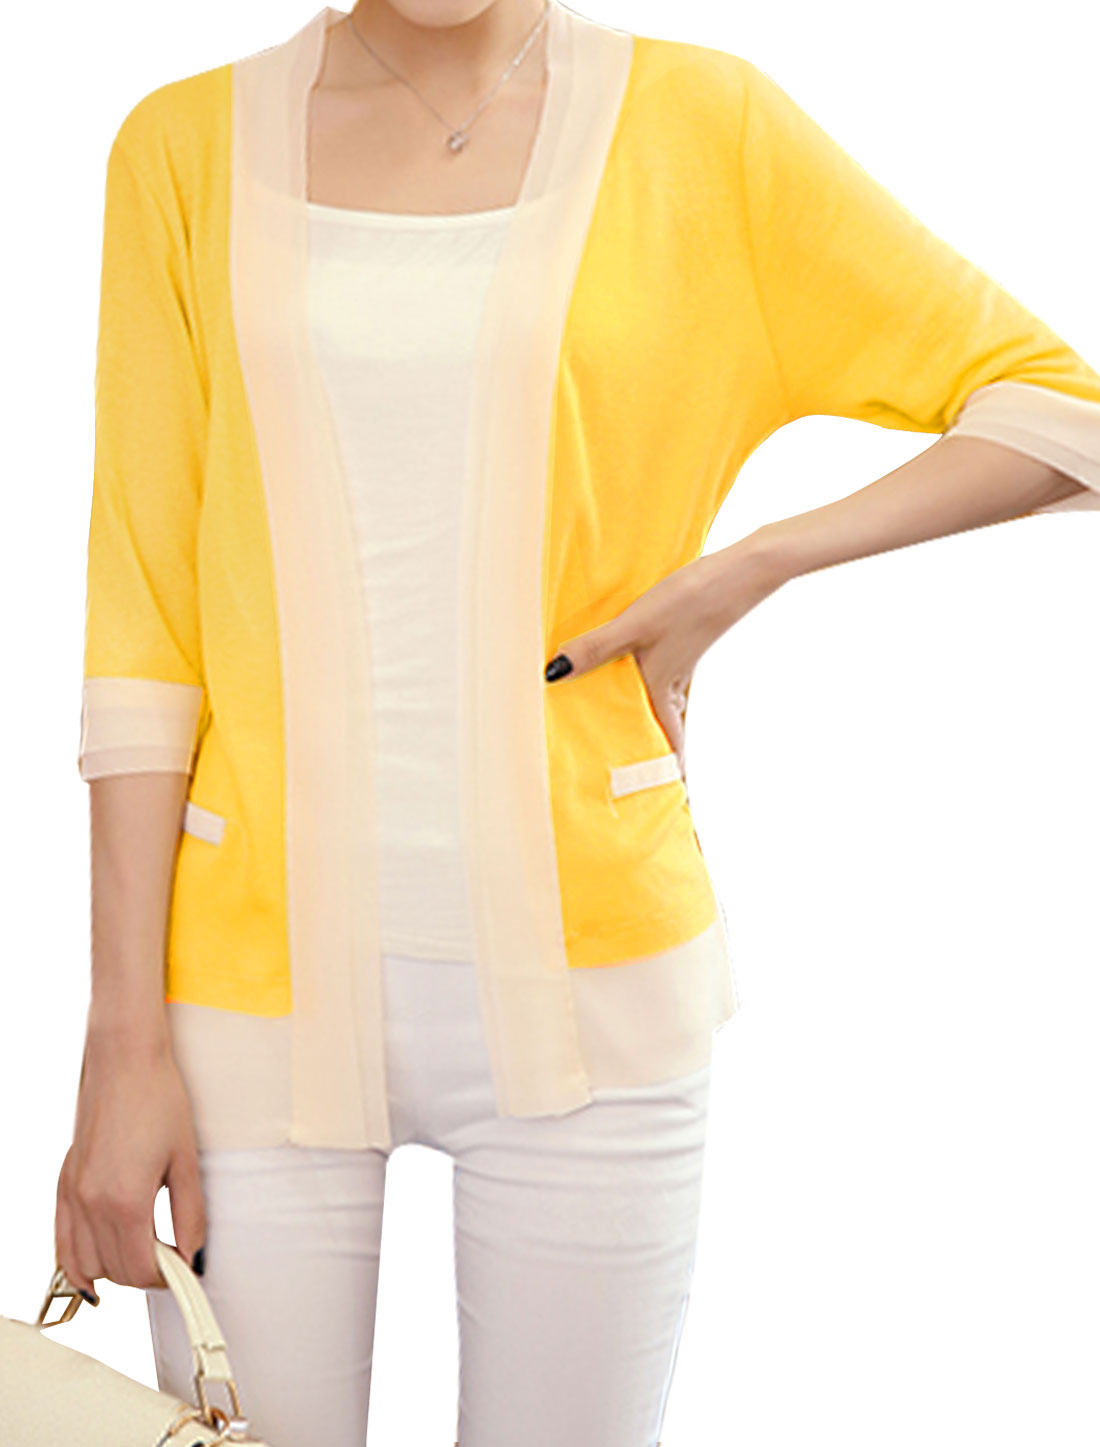 Ladies Buttonless Panel Design 3/4 Sleeves Cardigan Yellow XS